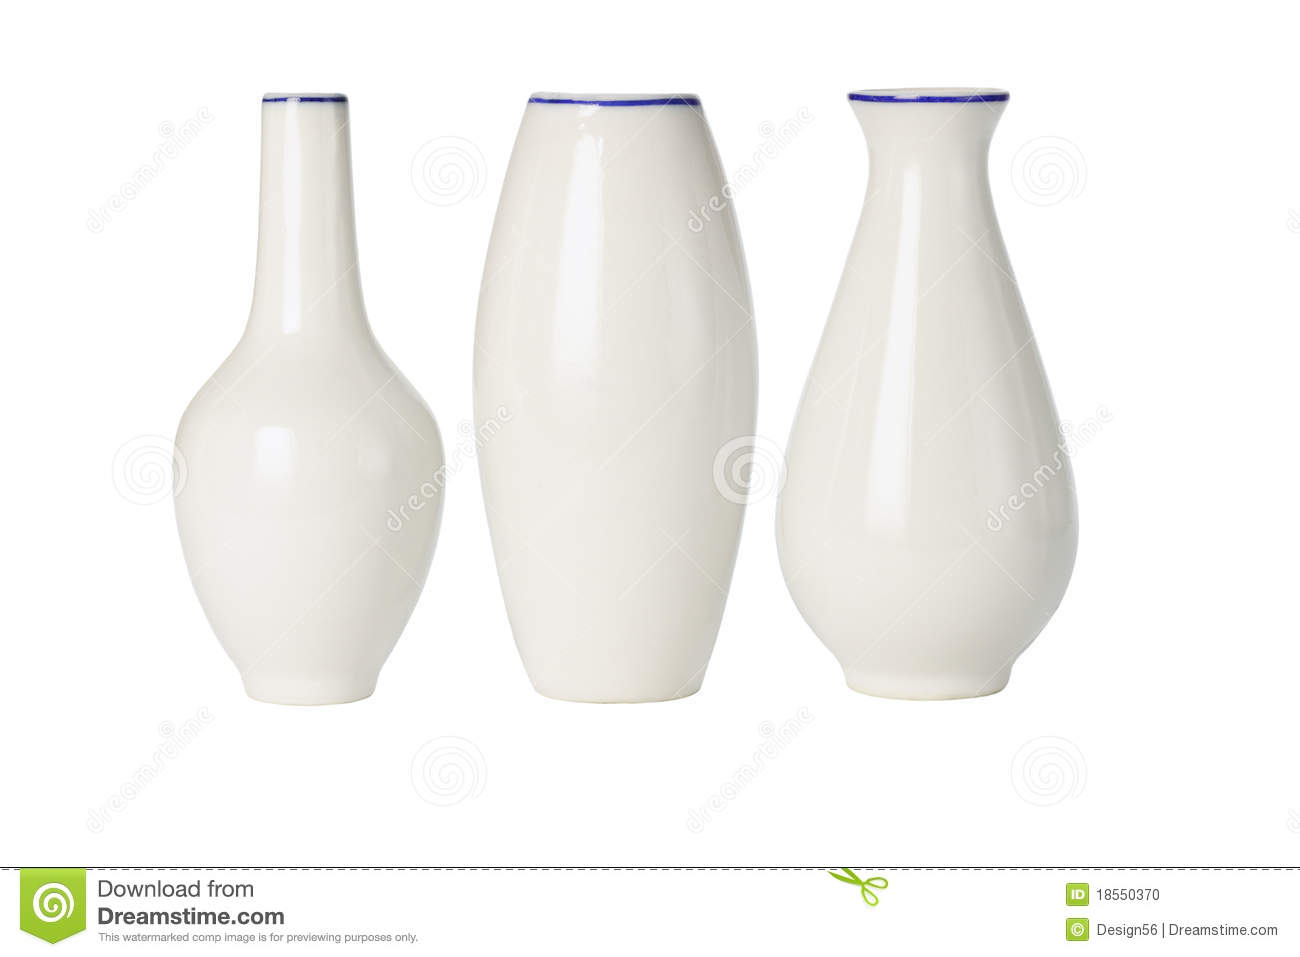 Chinese Porcelain Vases Of Various Shapes Stock Photo Image Of Orient Background 18550370